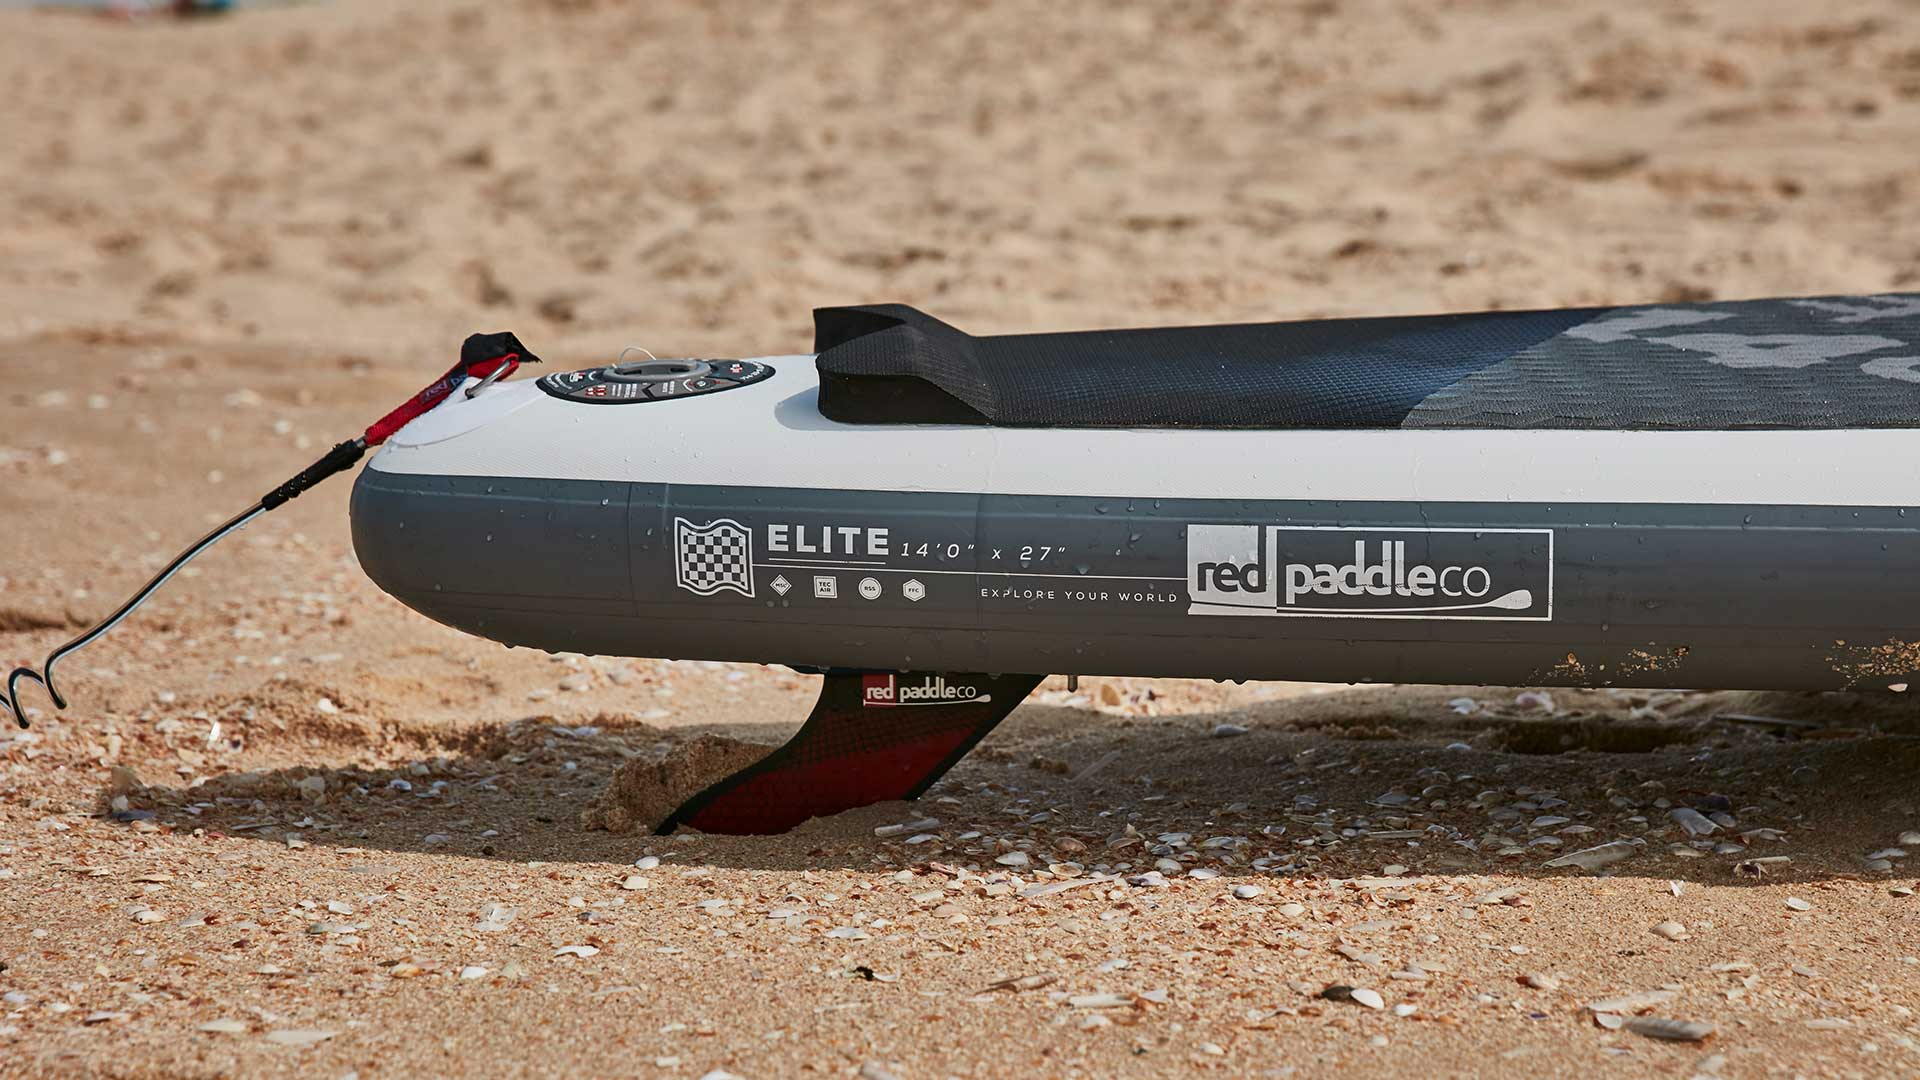 redpaddleco-140x27-elite-inflatable-paddle-board-desktop-gallery-fins